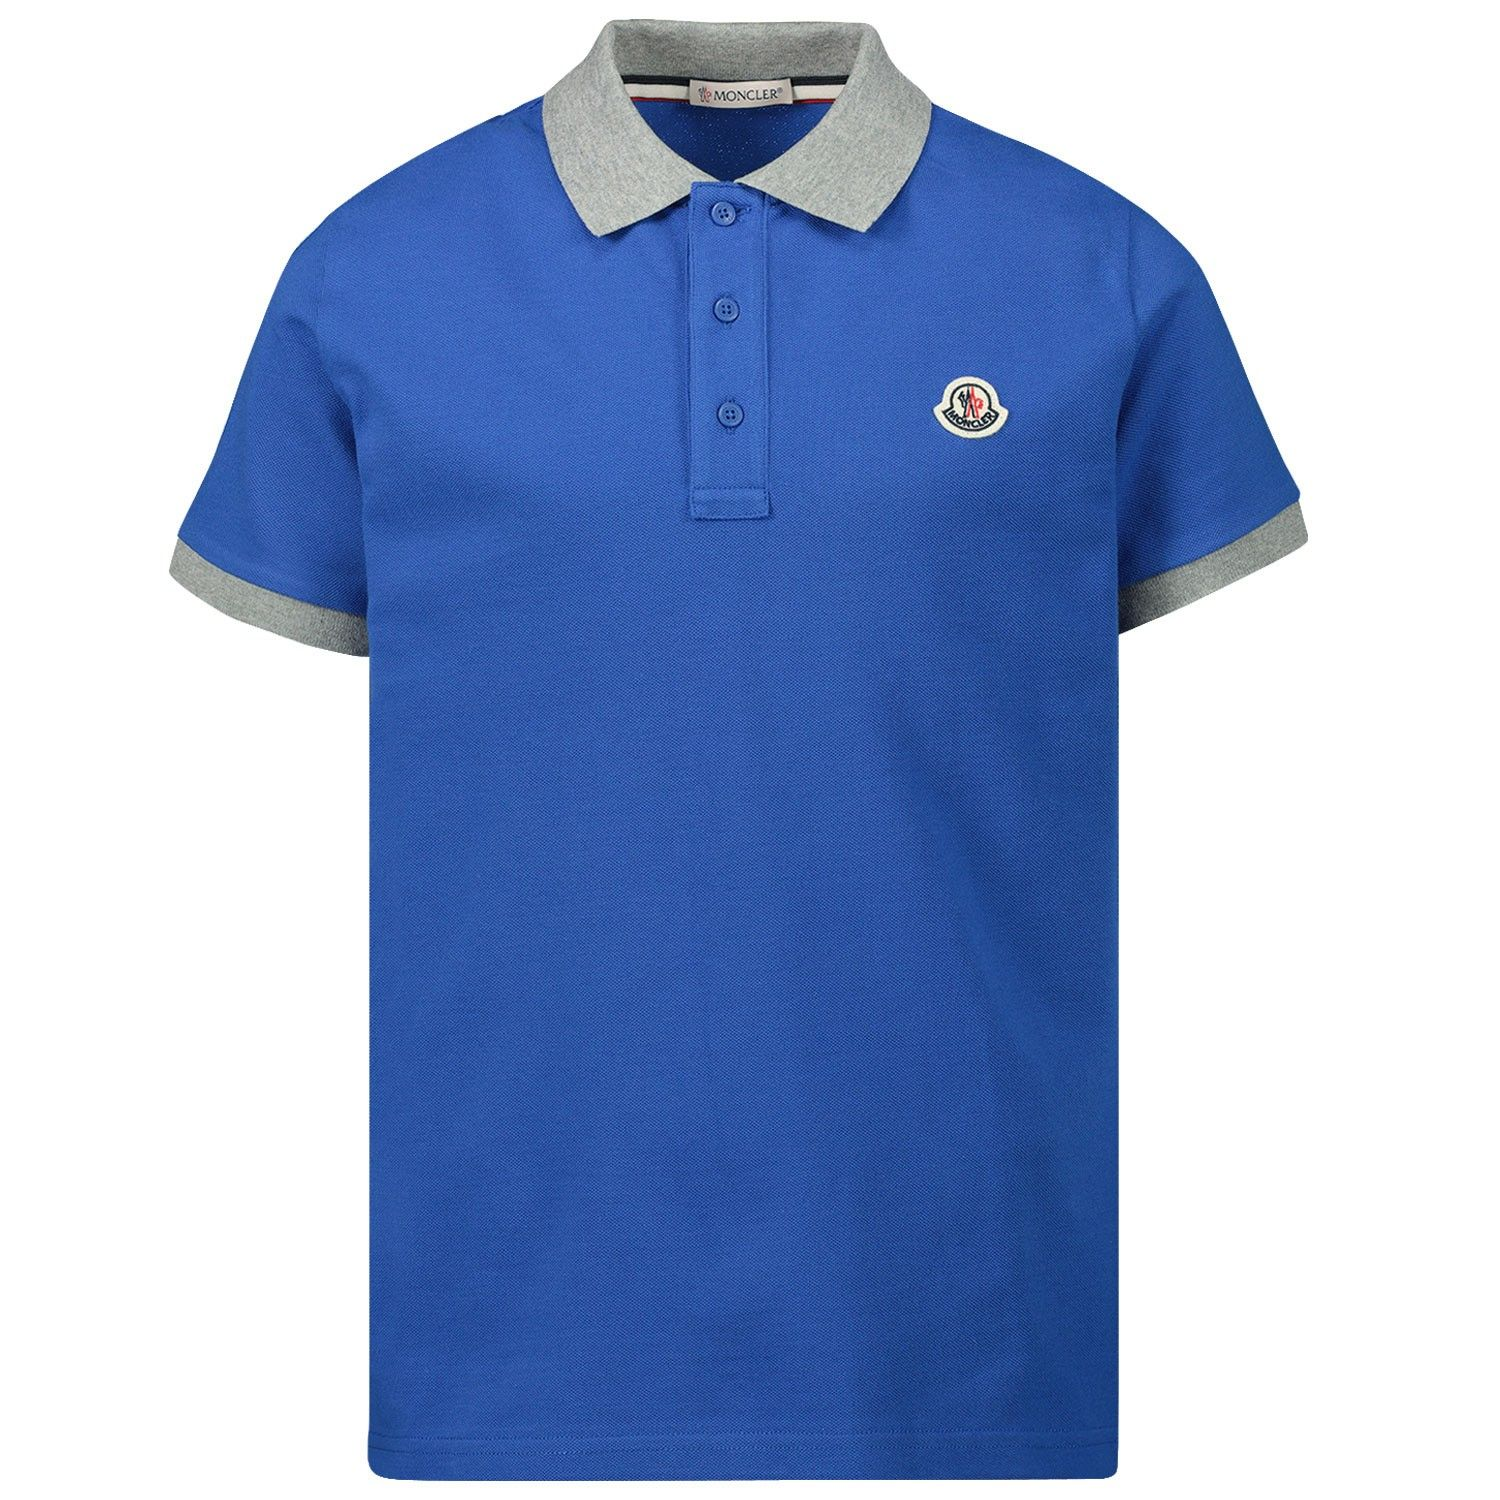 Afbeelding van Moncler 8A70120 kinder polo blauw